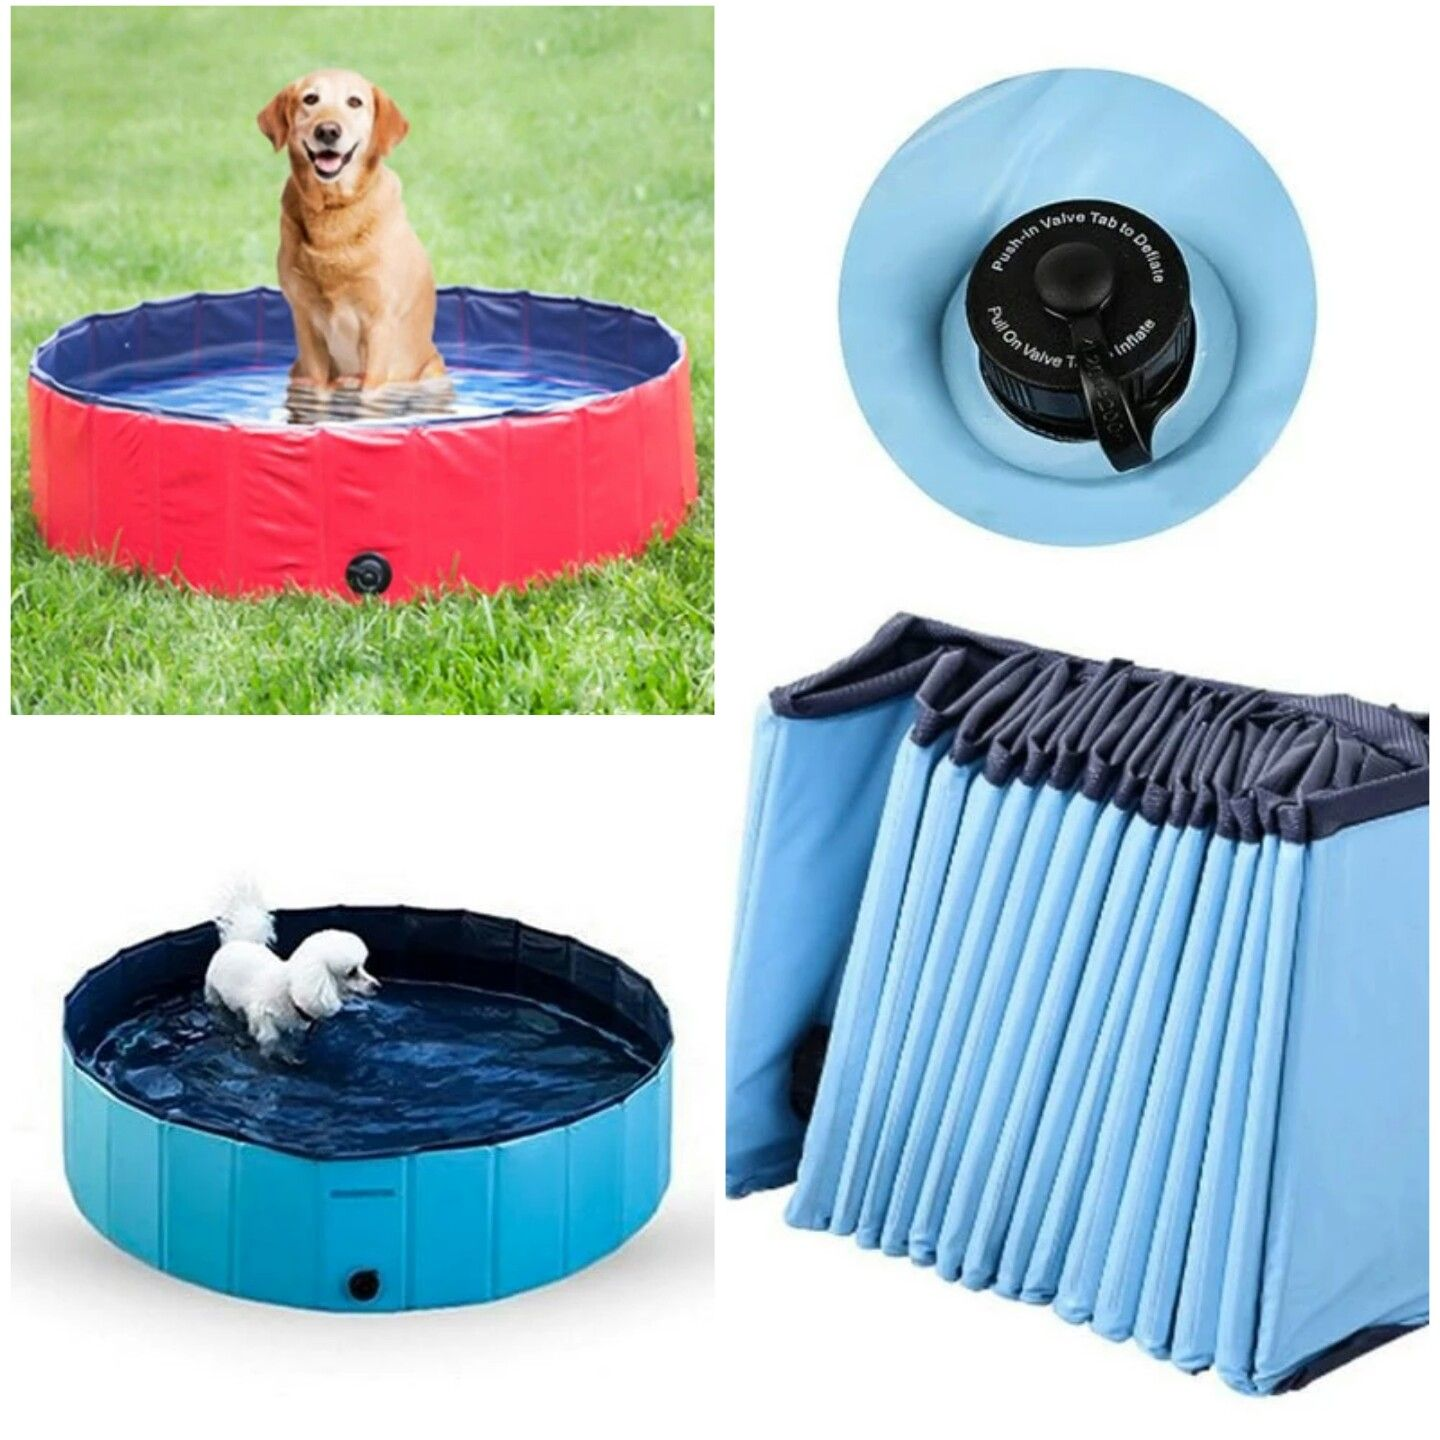 New Fordable Dog Pool Pet Bath Swimming Tub Pets Dogs Puppies